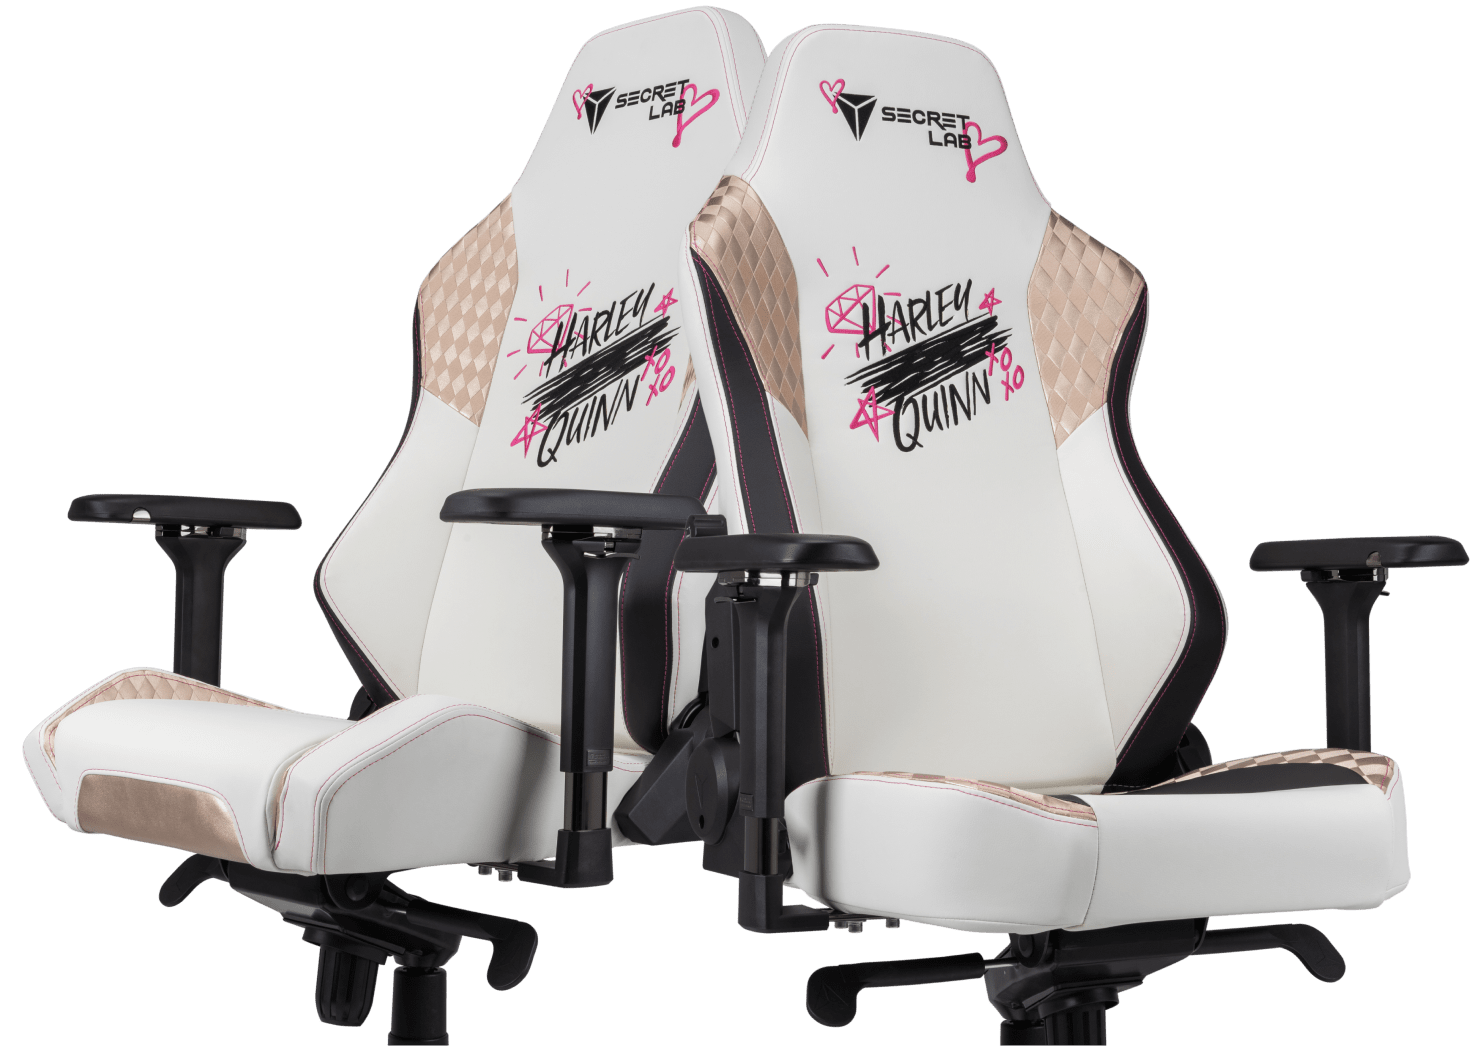 Secretlab x Birds Of Prey - OMEGA and TITAN Special Edition Gaming Chairs